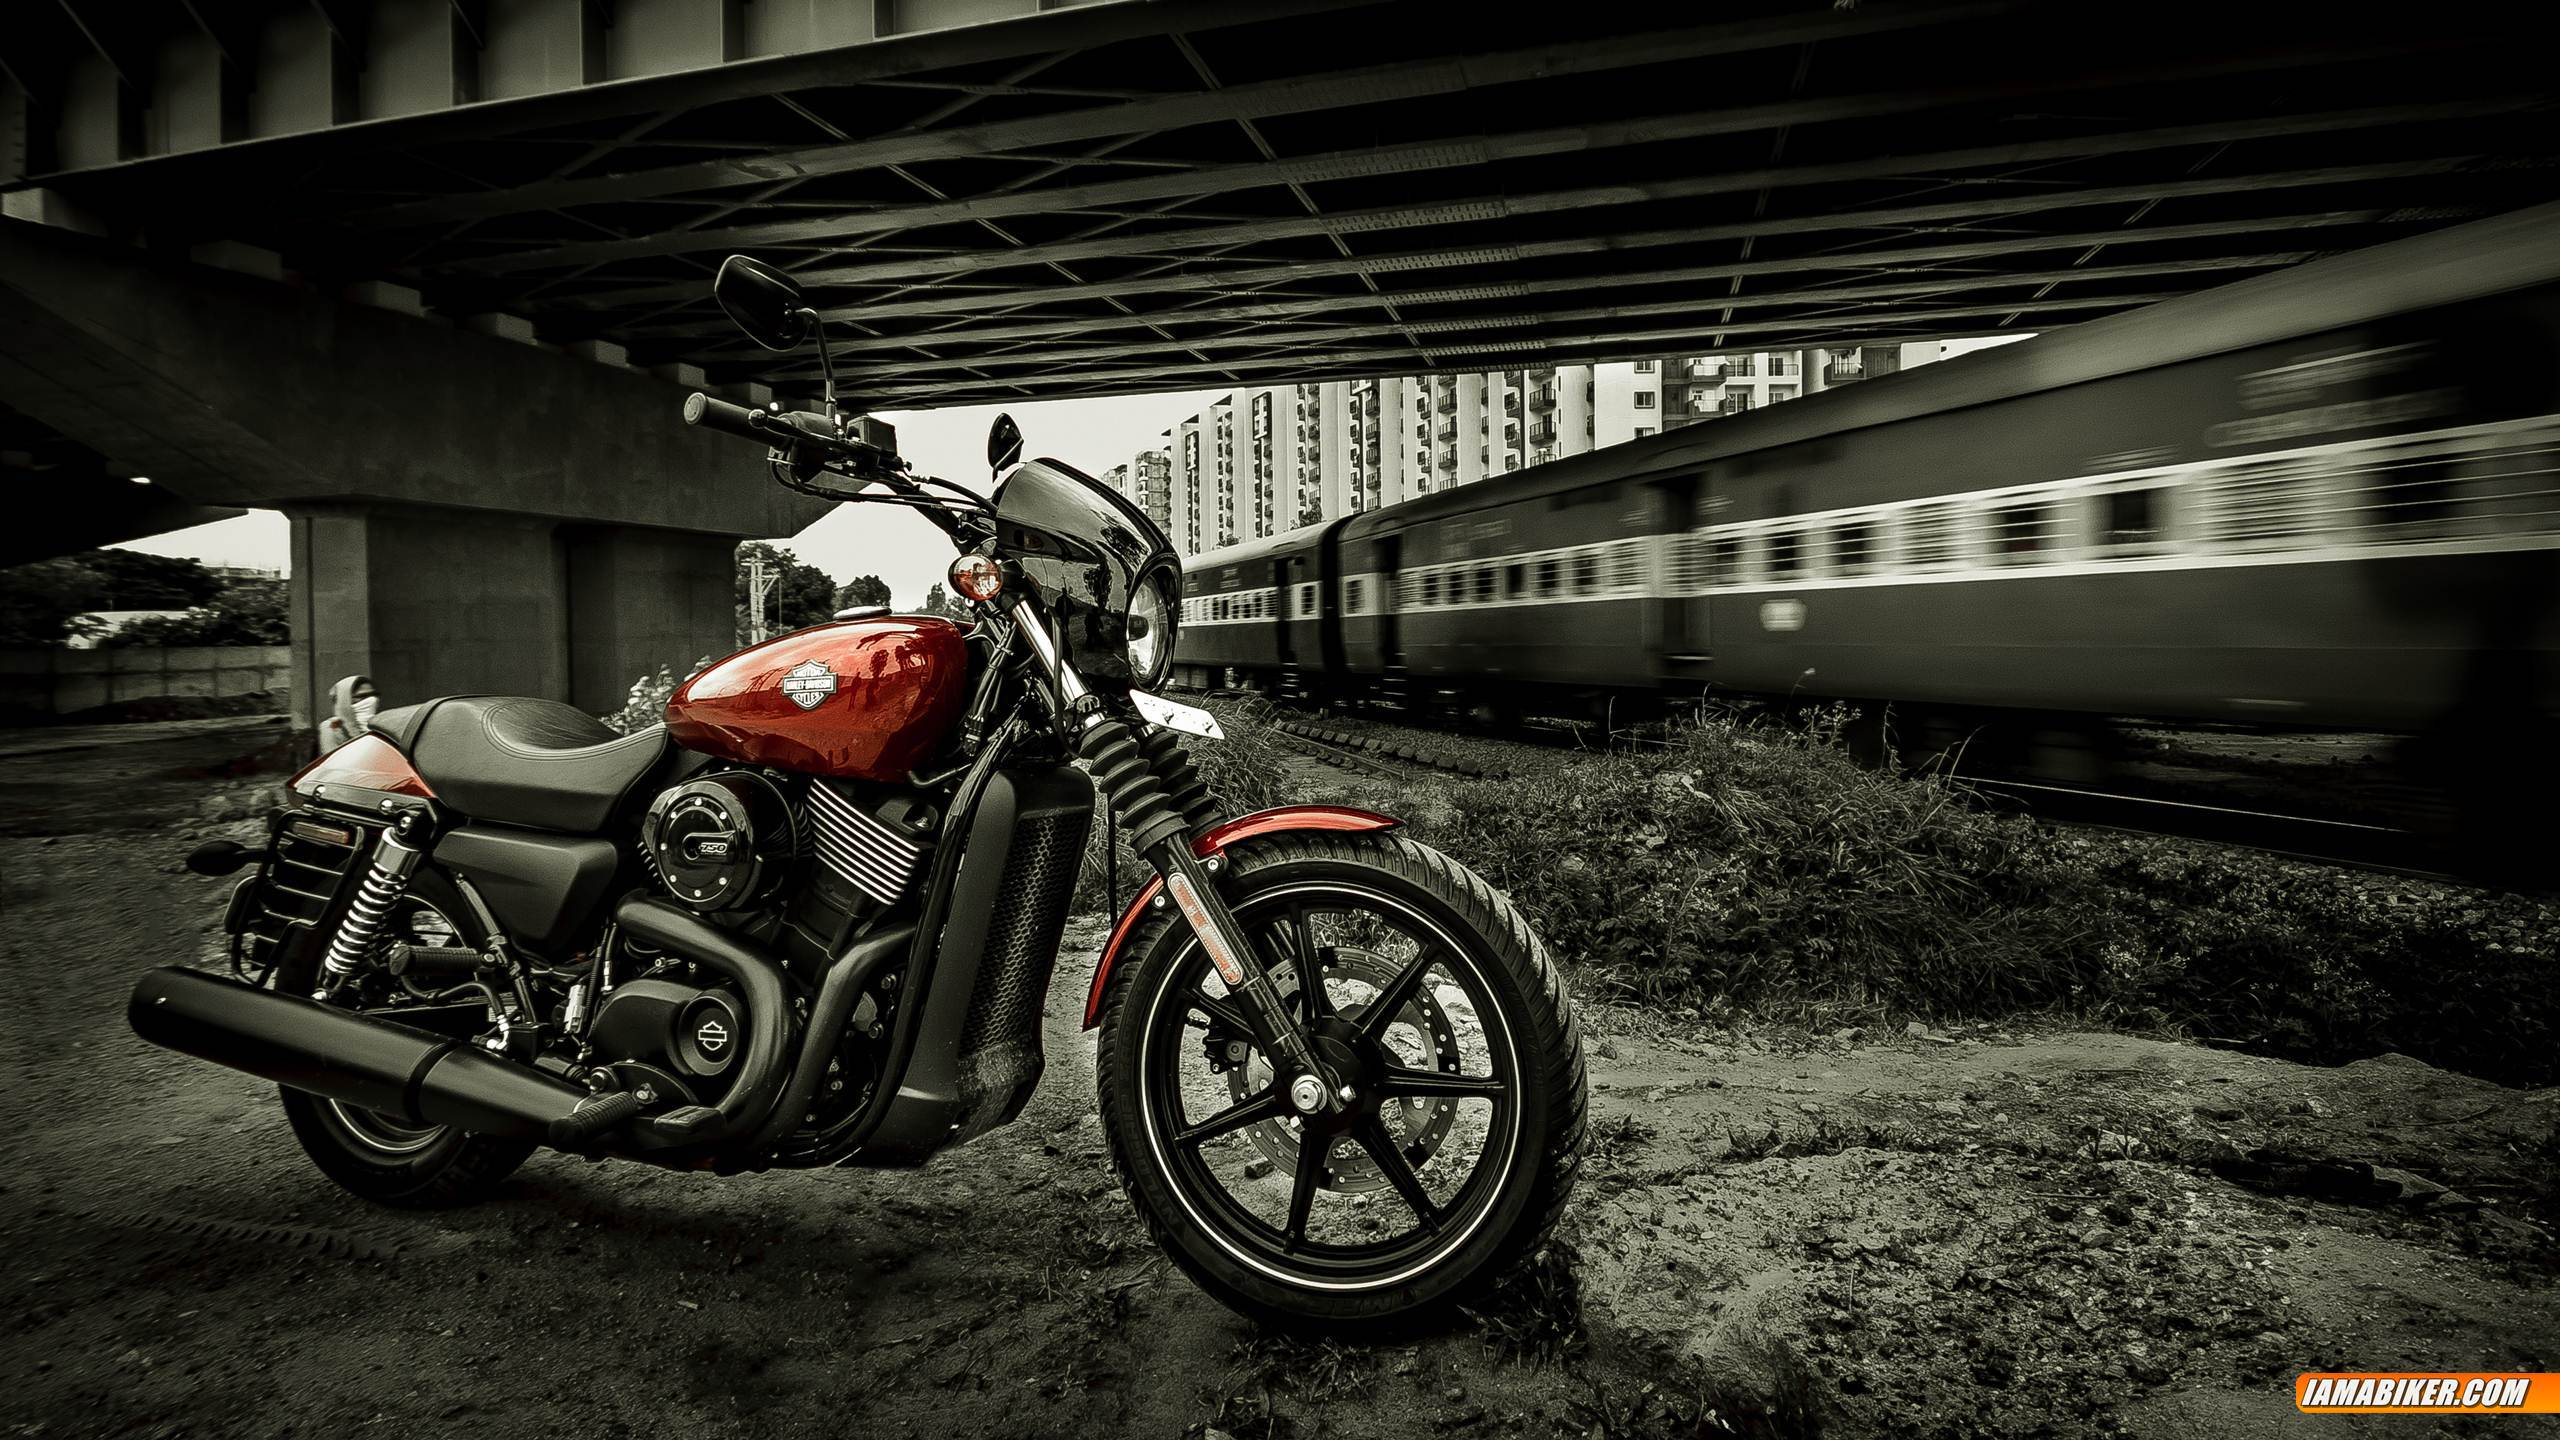 Harley Davidson Street 750 Wallpapers